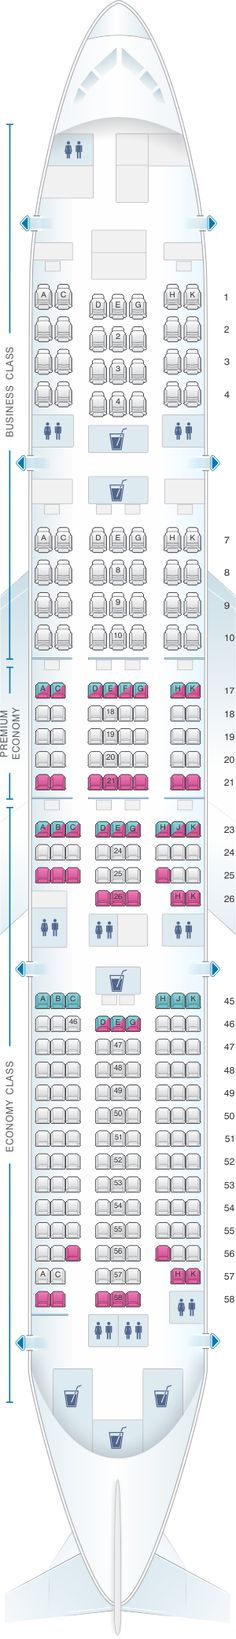 Seat Map Japan Airlines (JAL) Boeing B777 200ER W52/53